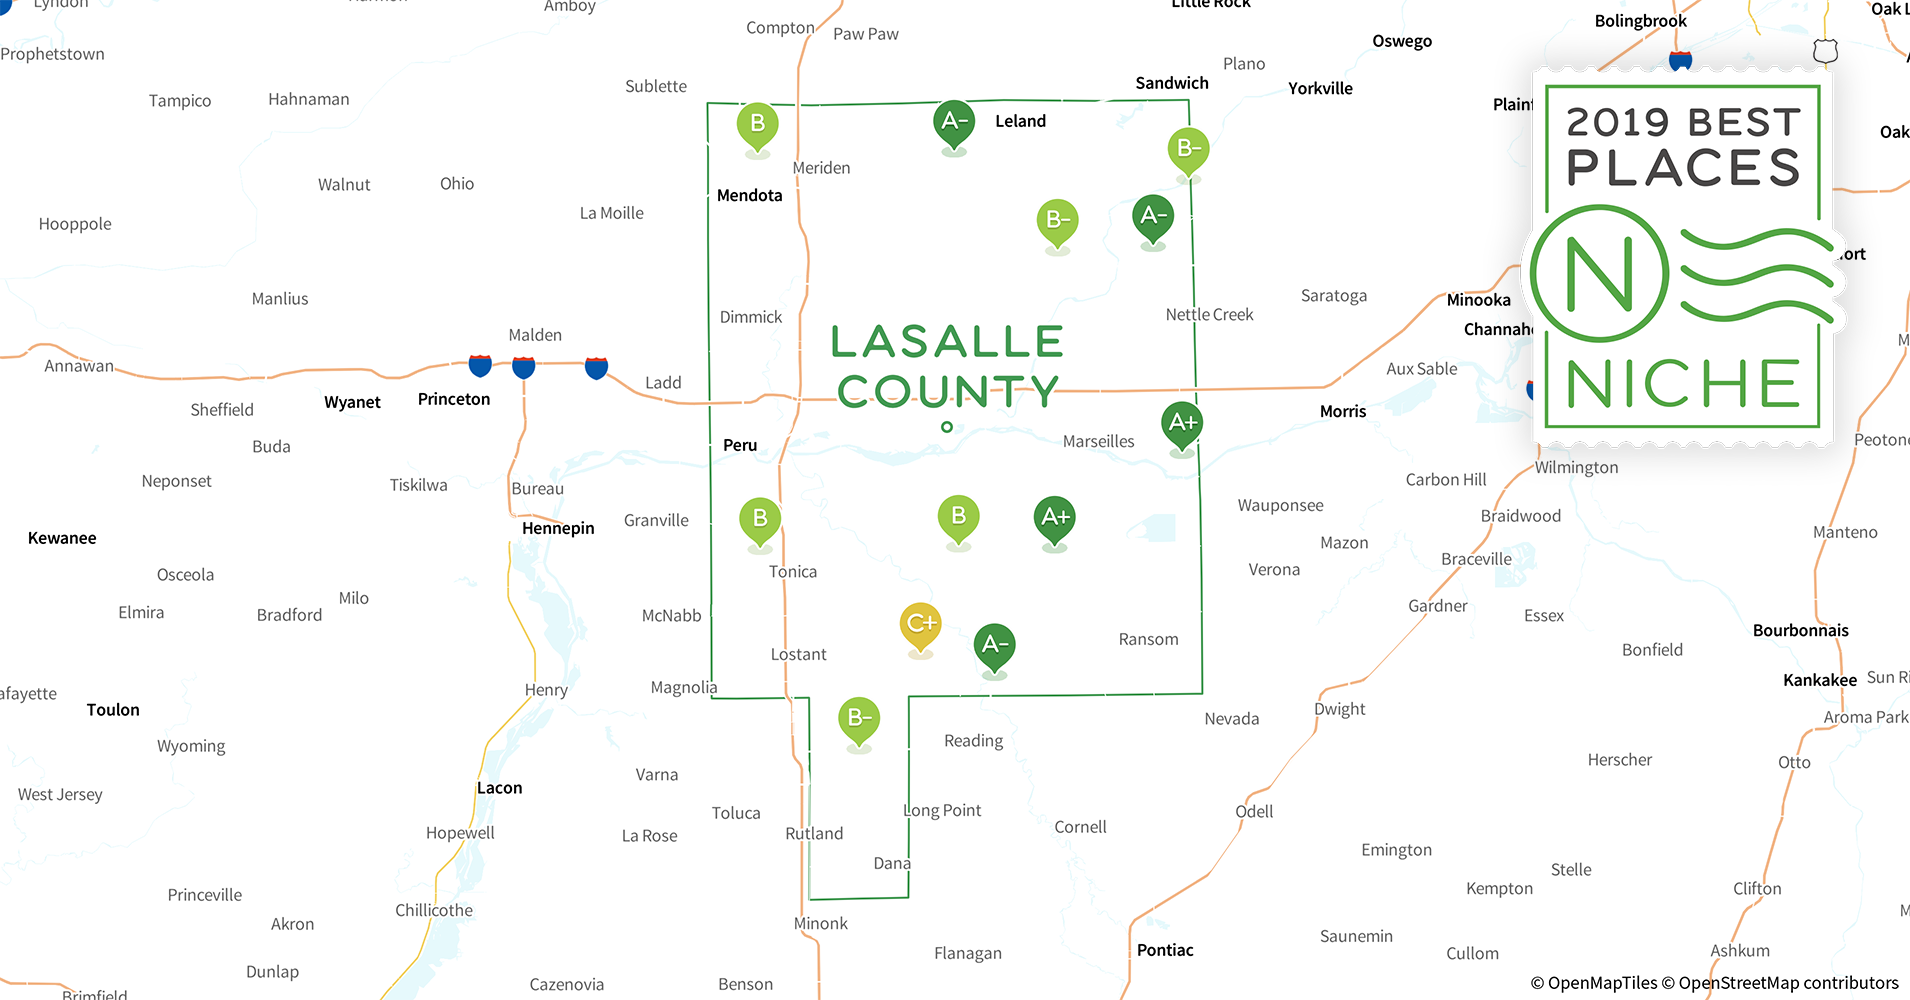 2019 Best Places to Live in LaSalle County, IL - Niche